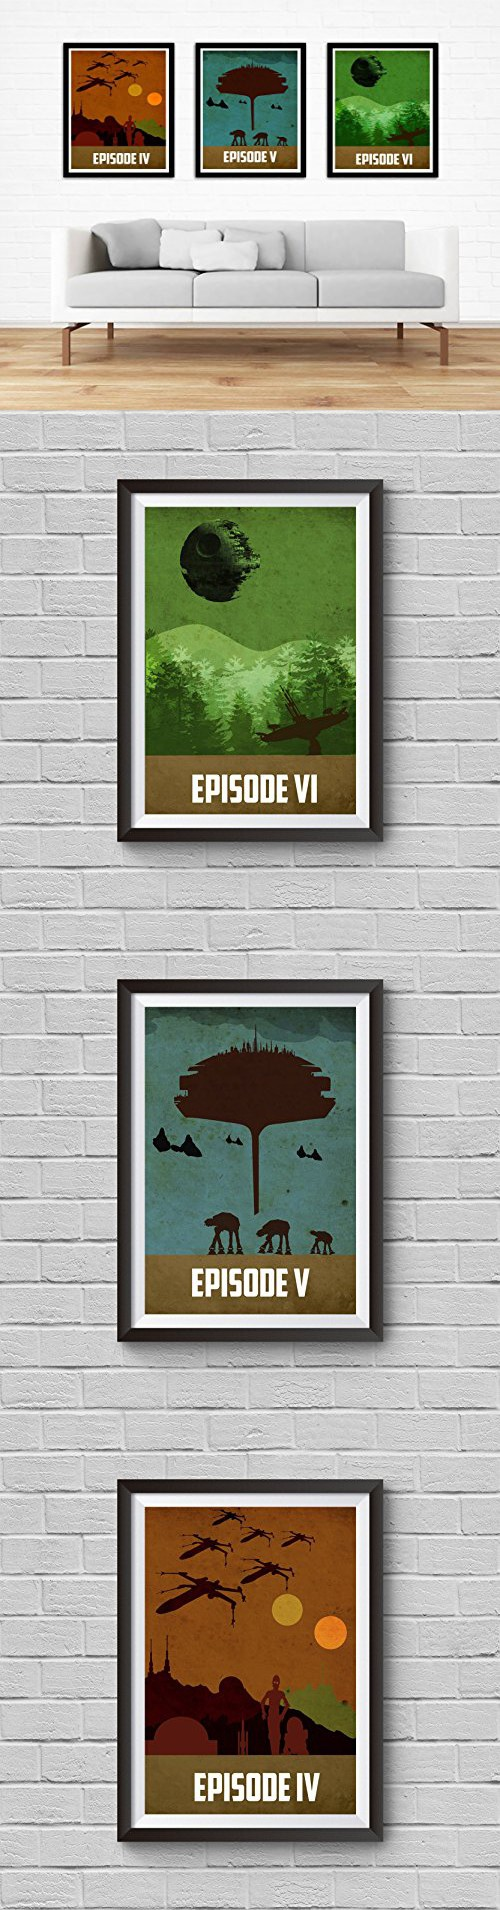 star wars trilogy poster set vintage poster star wars movie print star wars trilogy poster set vintage poster star wars movie print minimalist star wars poster artwork wall art home decor wall hanging a new hope the empire